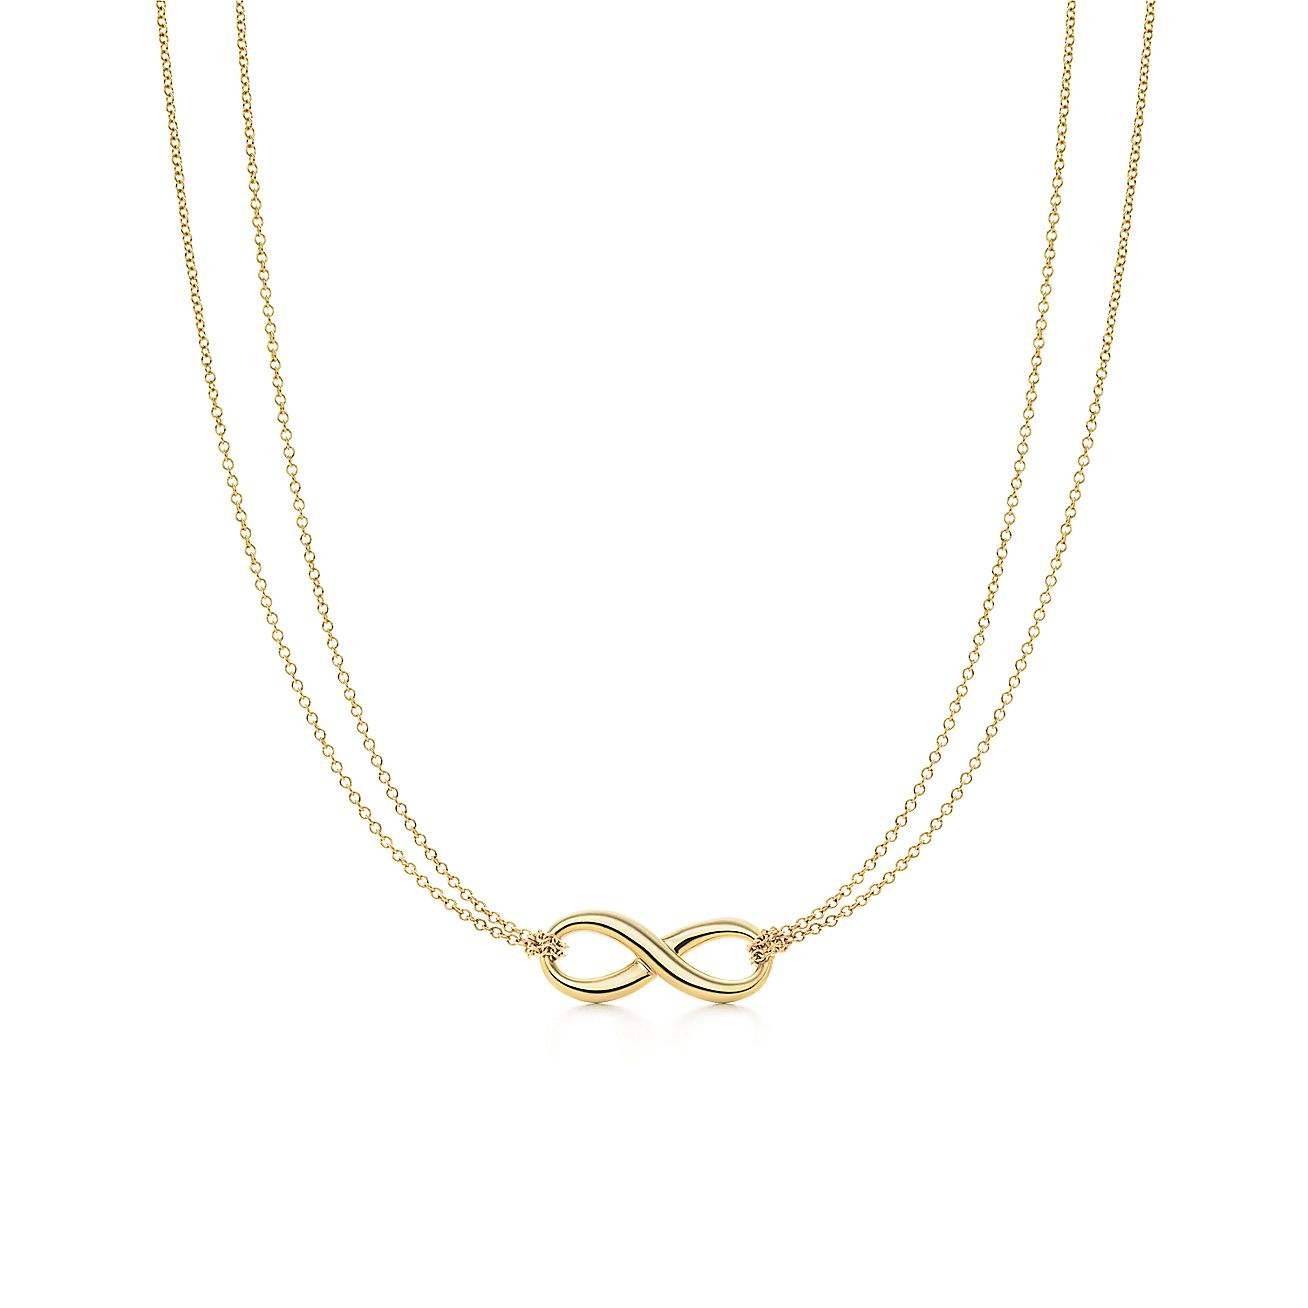 maemae theinfinityringcloseup products necklace infinity sign ring infinite possibilities jewelry